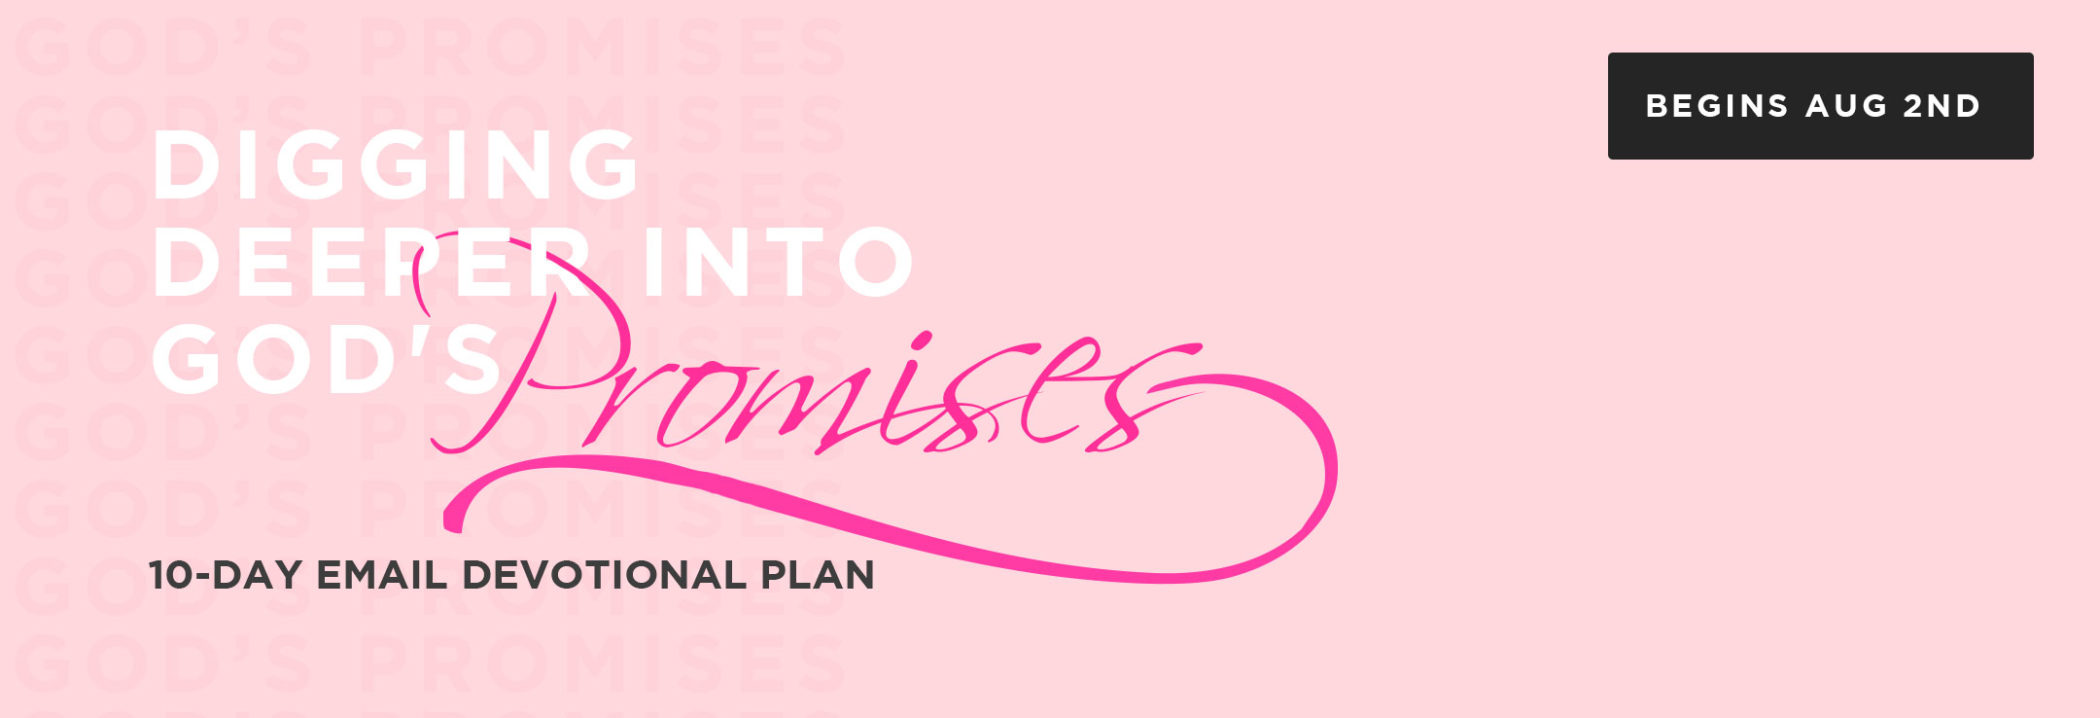 Digging Deeper Into God's Promises. 10-Day Email Devotional Plan